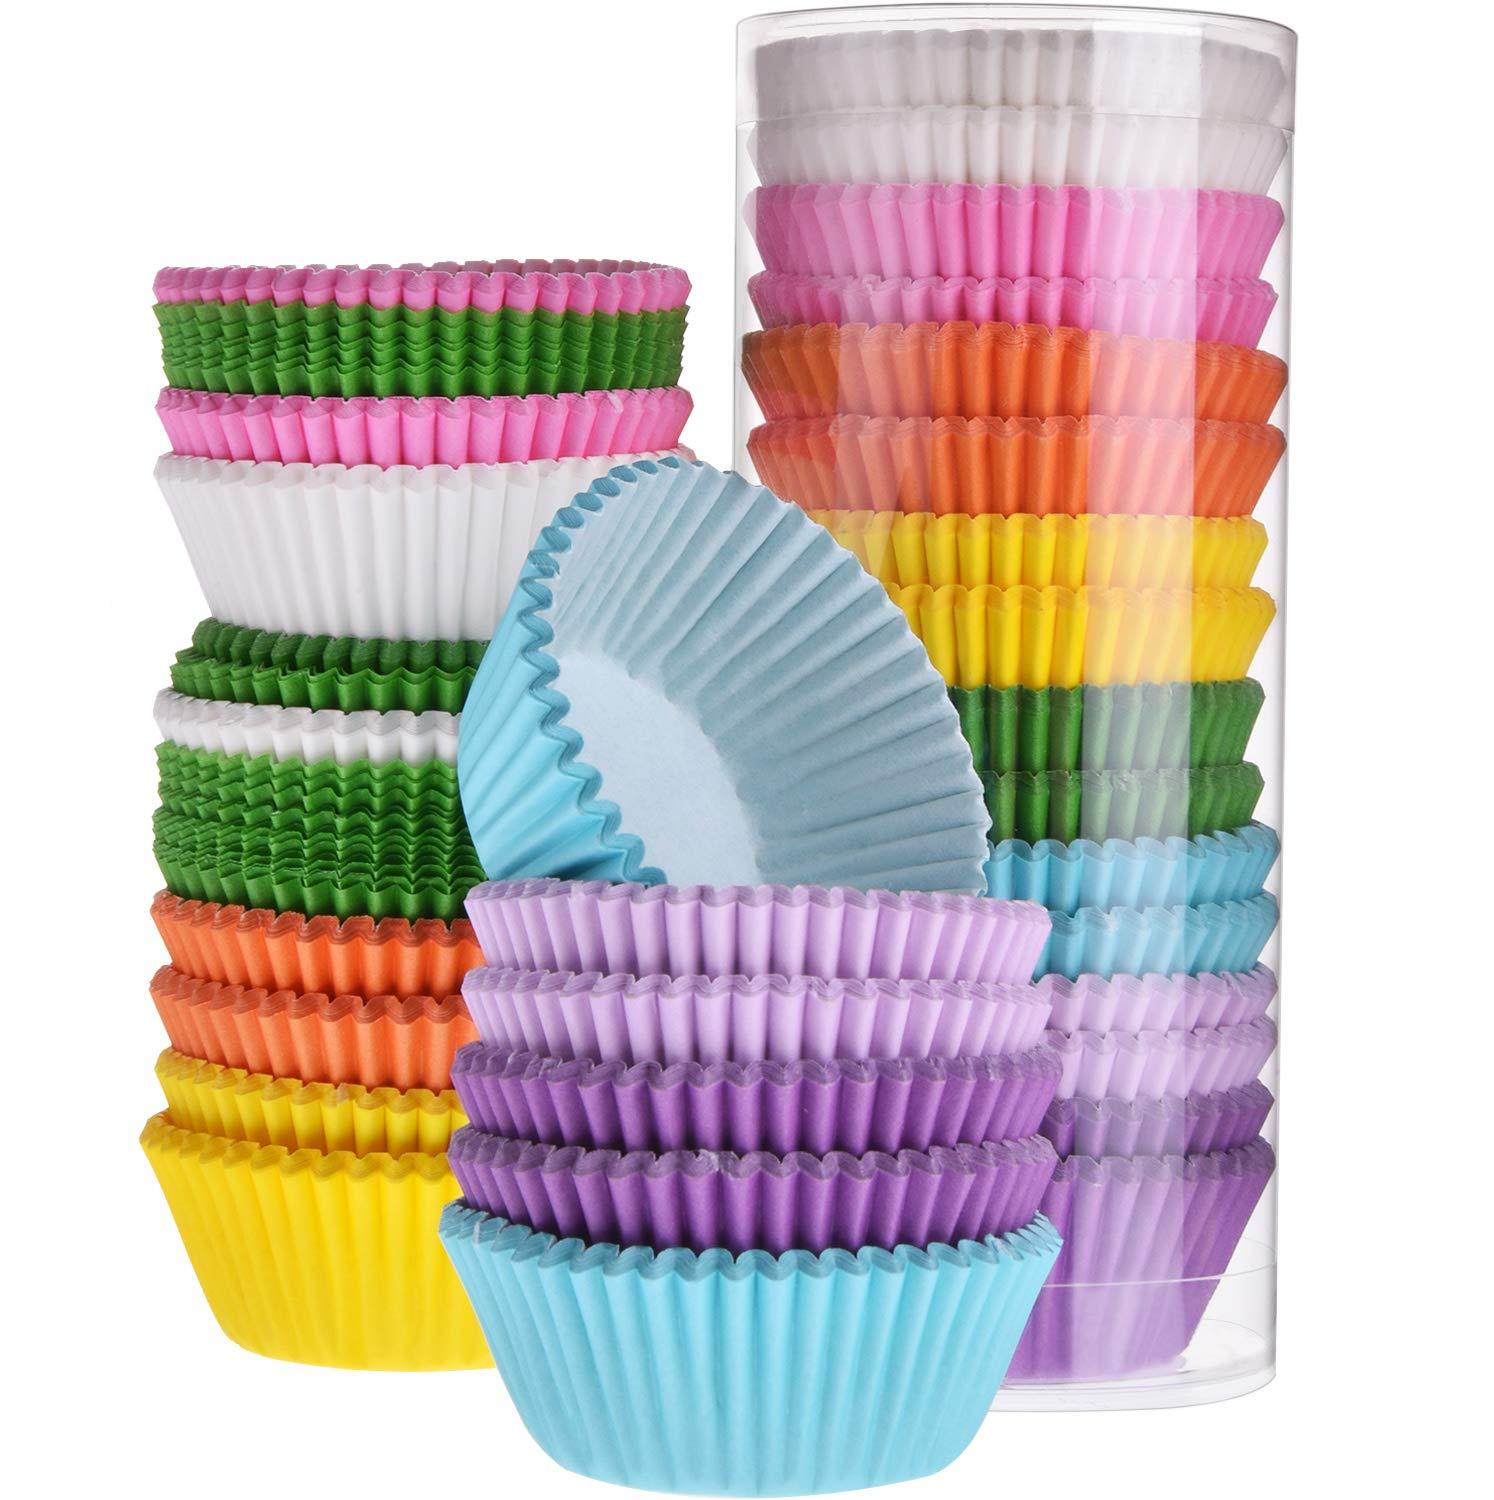 TecUnite 400 Pieces Rainbow Color Muffin Cups Greaseproof Mini Muffin Cupcake Liners Baking Paper Cup for Candies Cupcakes Muffins Decoration (1.97 inch Diameter)